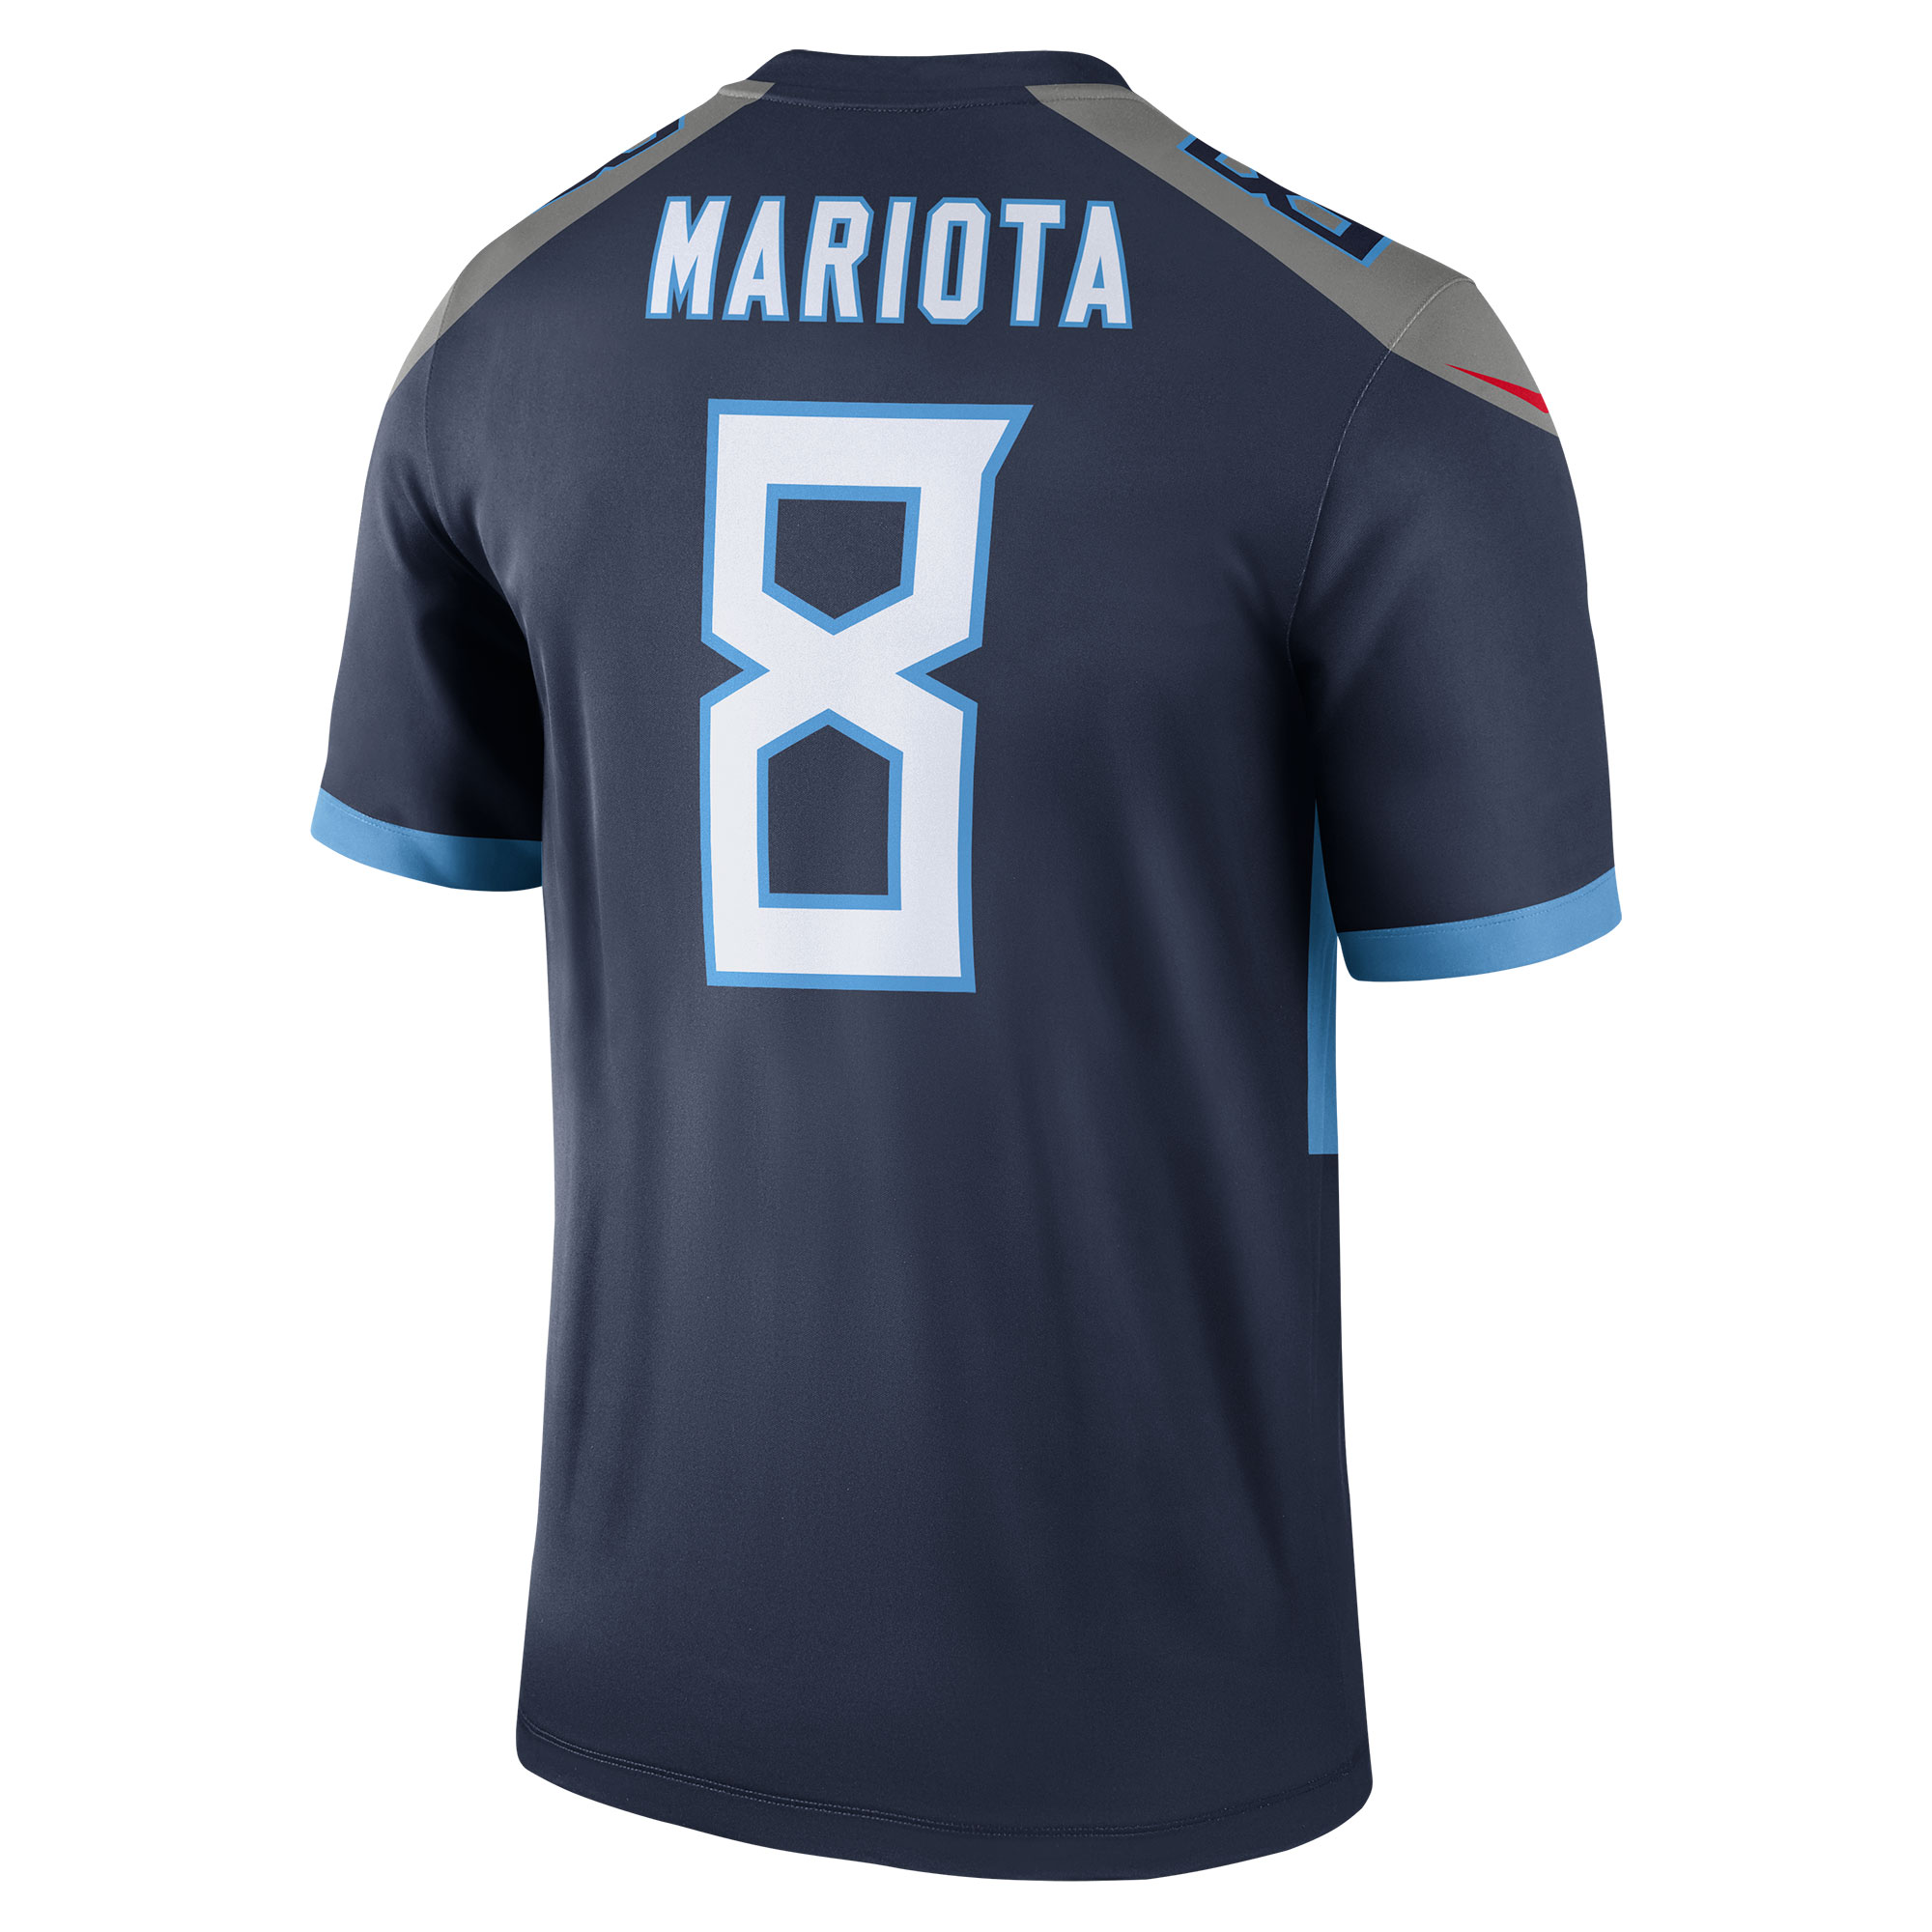 28d6cd38 Marcus Mariota Tennessee Titans Nike New 2018 Legend Jersey - Navy